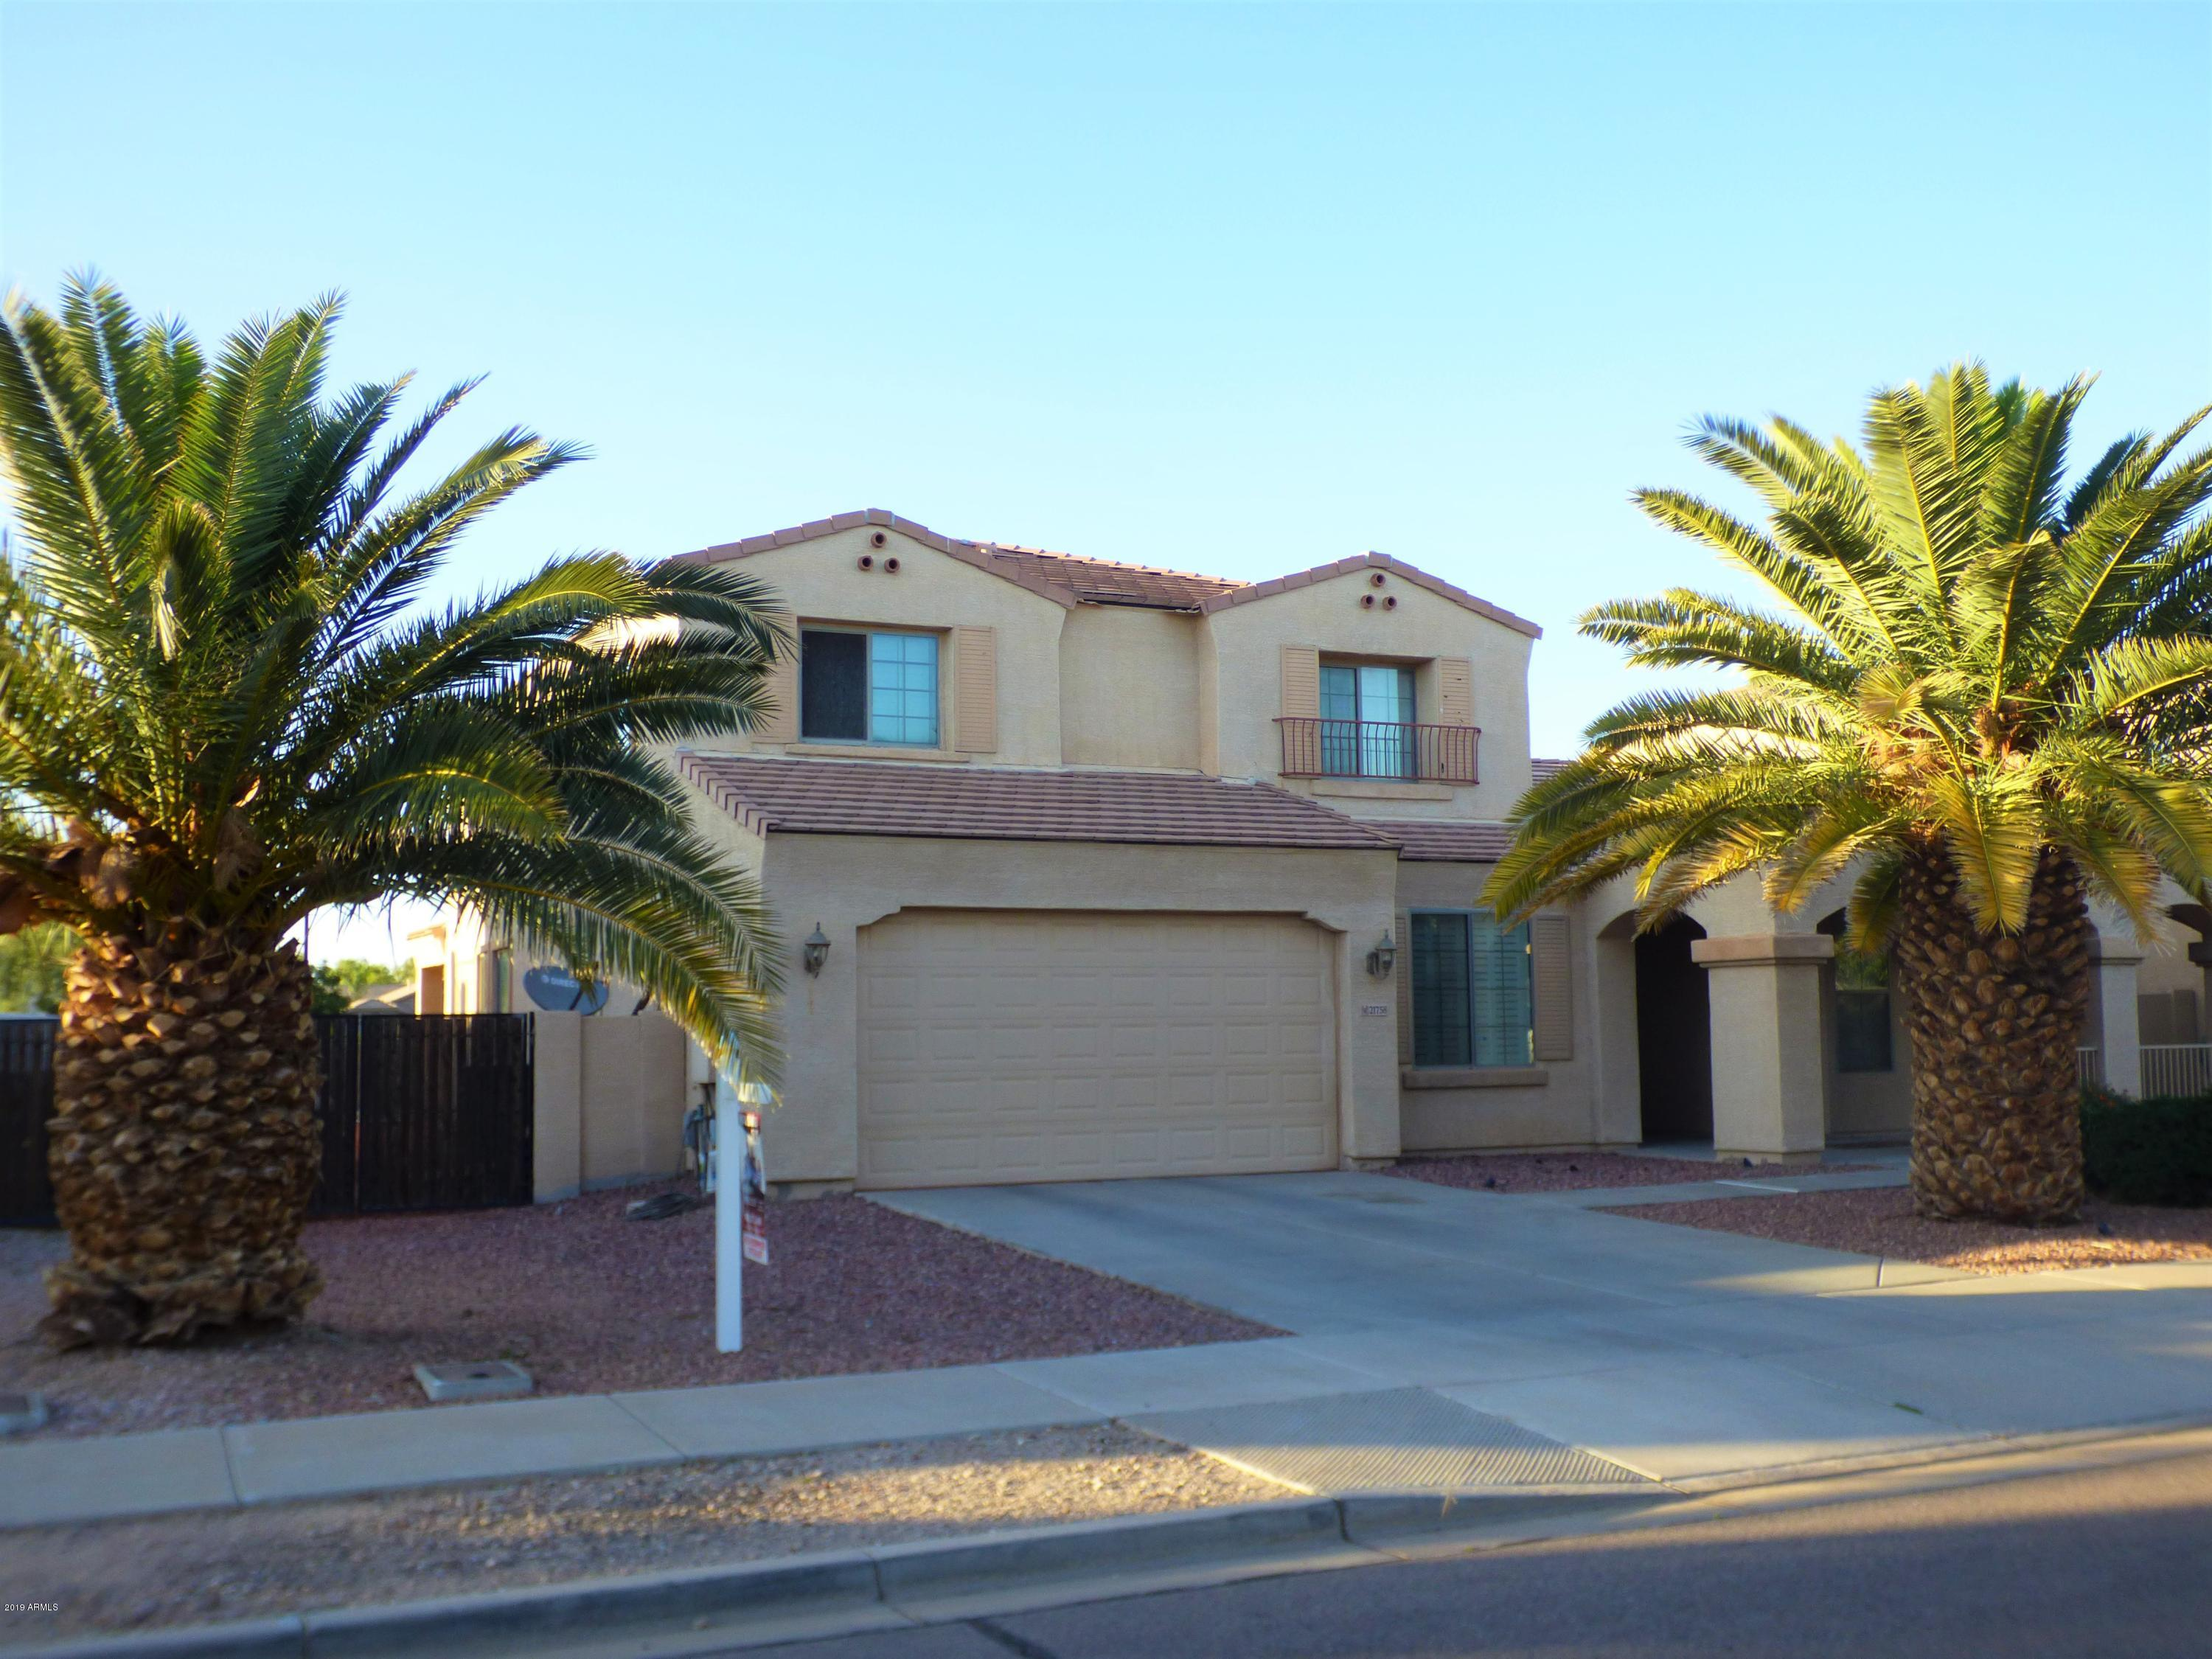 Photo of 21758 E CHERRYWOOD Drive, Queen Creek, AZ 85142